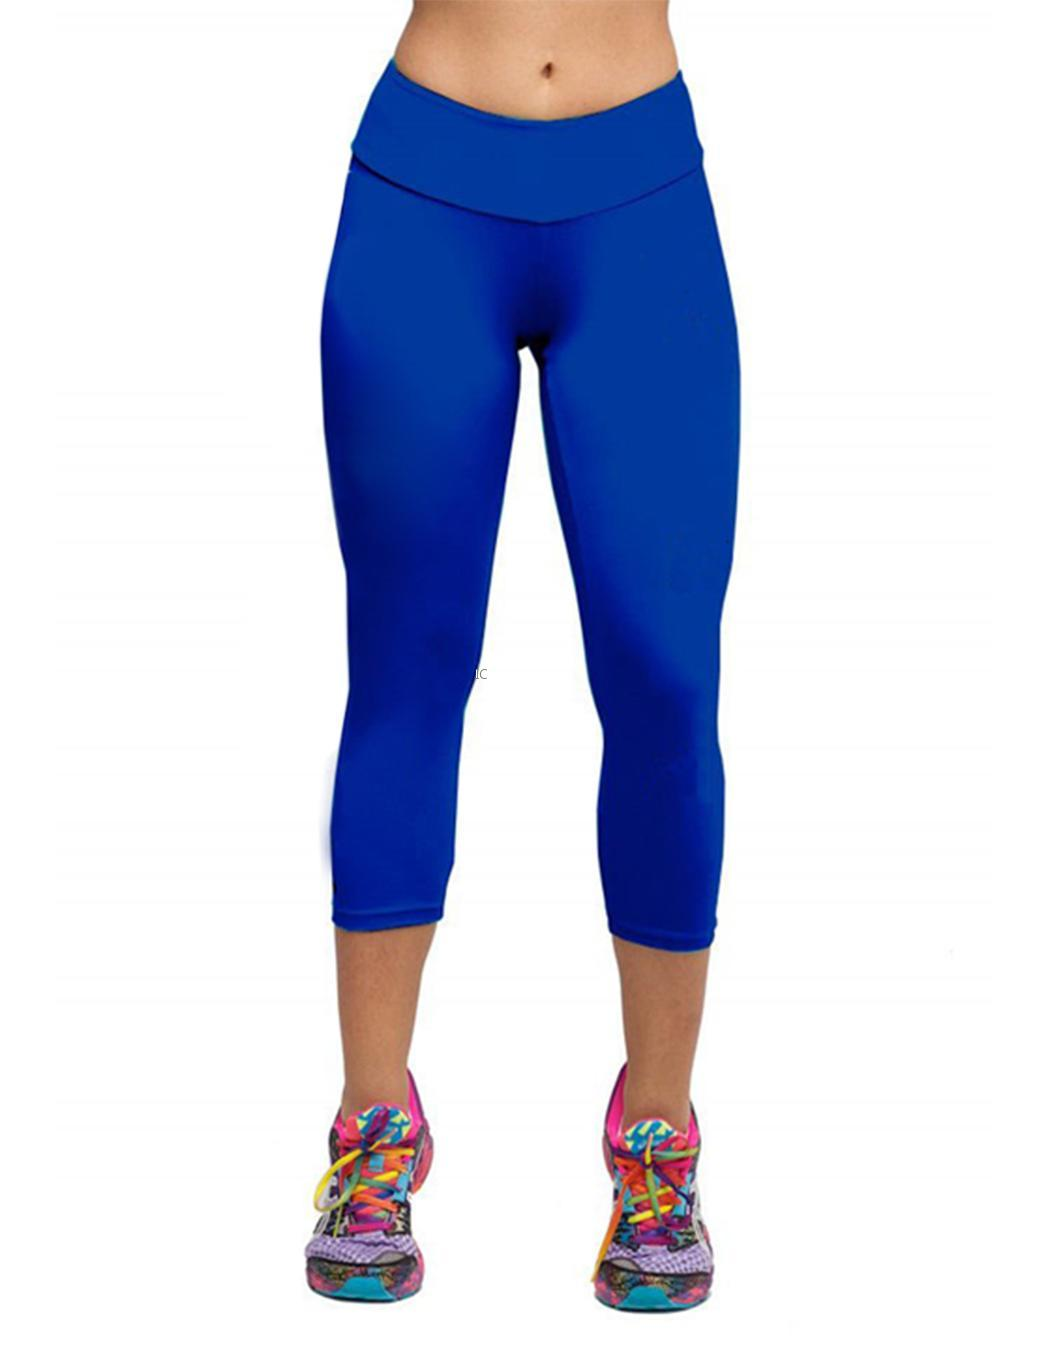 Shop Under Armour's selection of workout capri pants for women. Designed for comfort and performance.